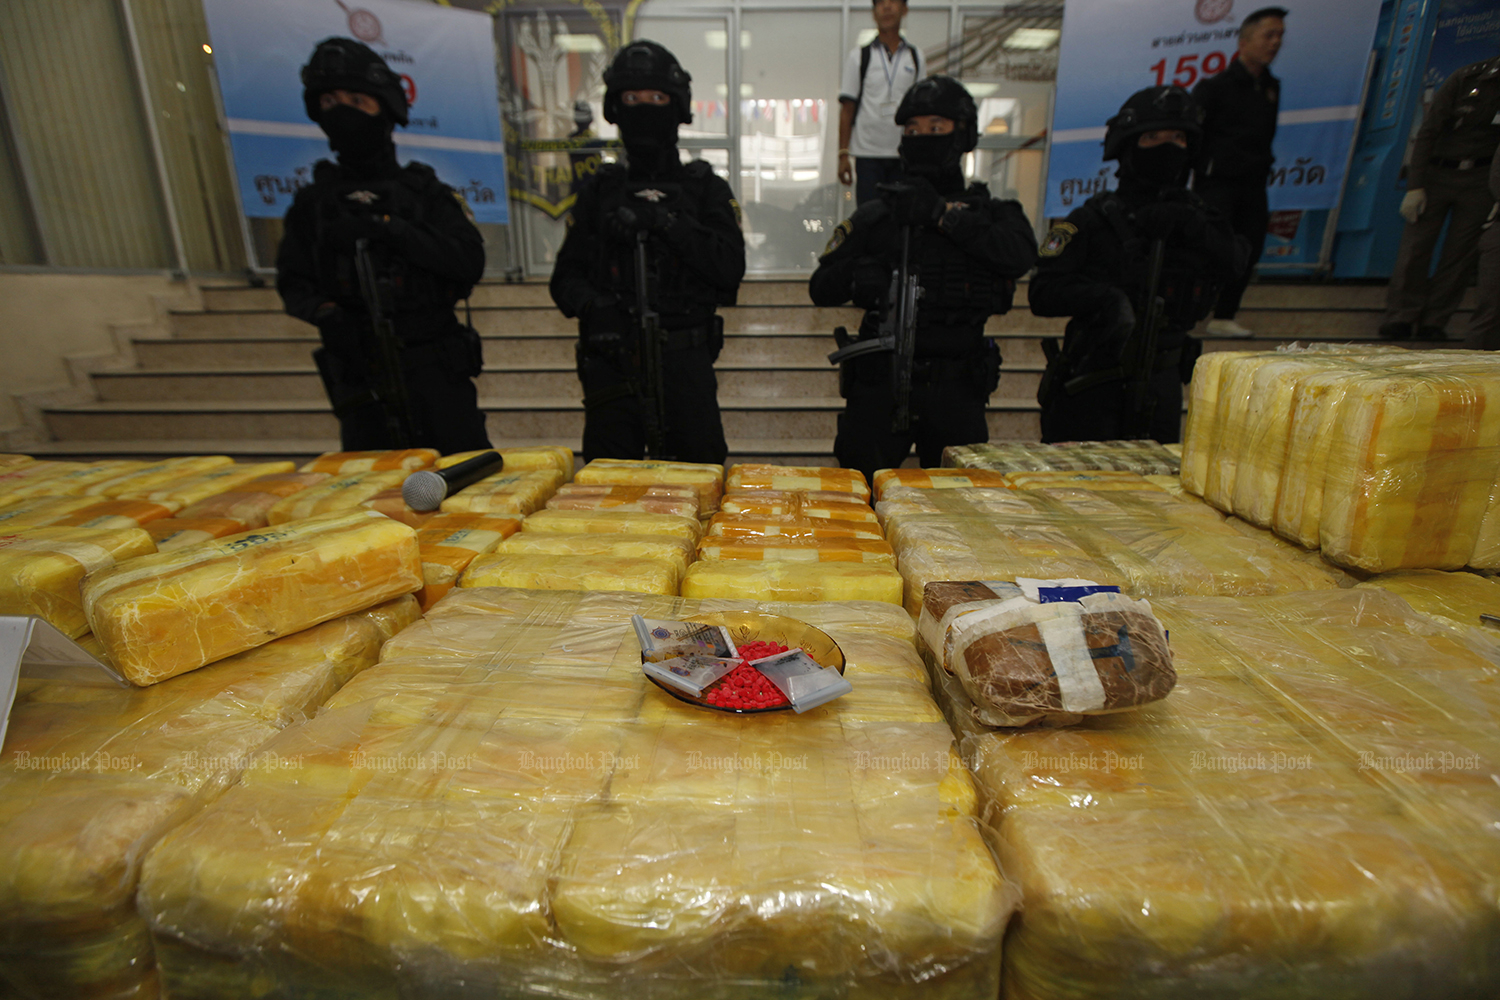 Justice Minister Somsak Thepsutin claims illicit drugs traffickers have shifted their delivery routes from Thailand to Vietnam. (Bangkok Post photo)